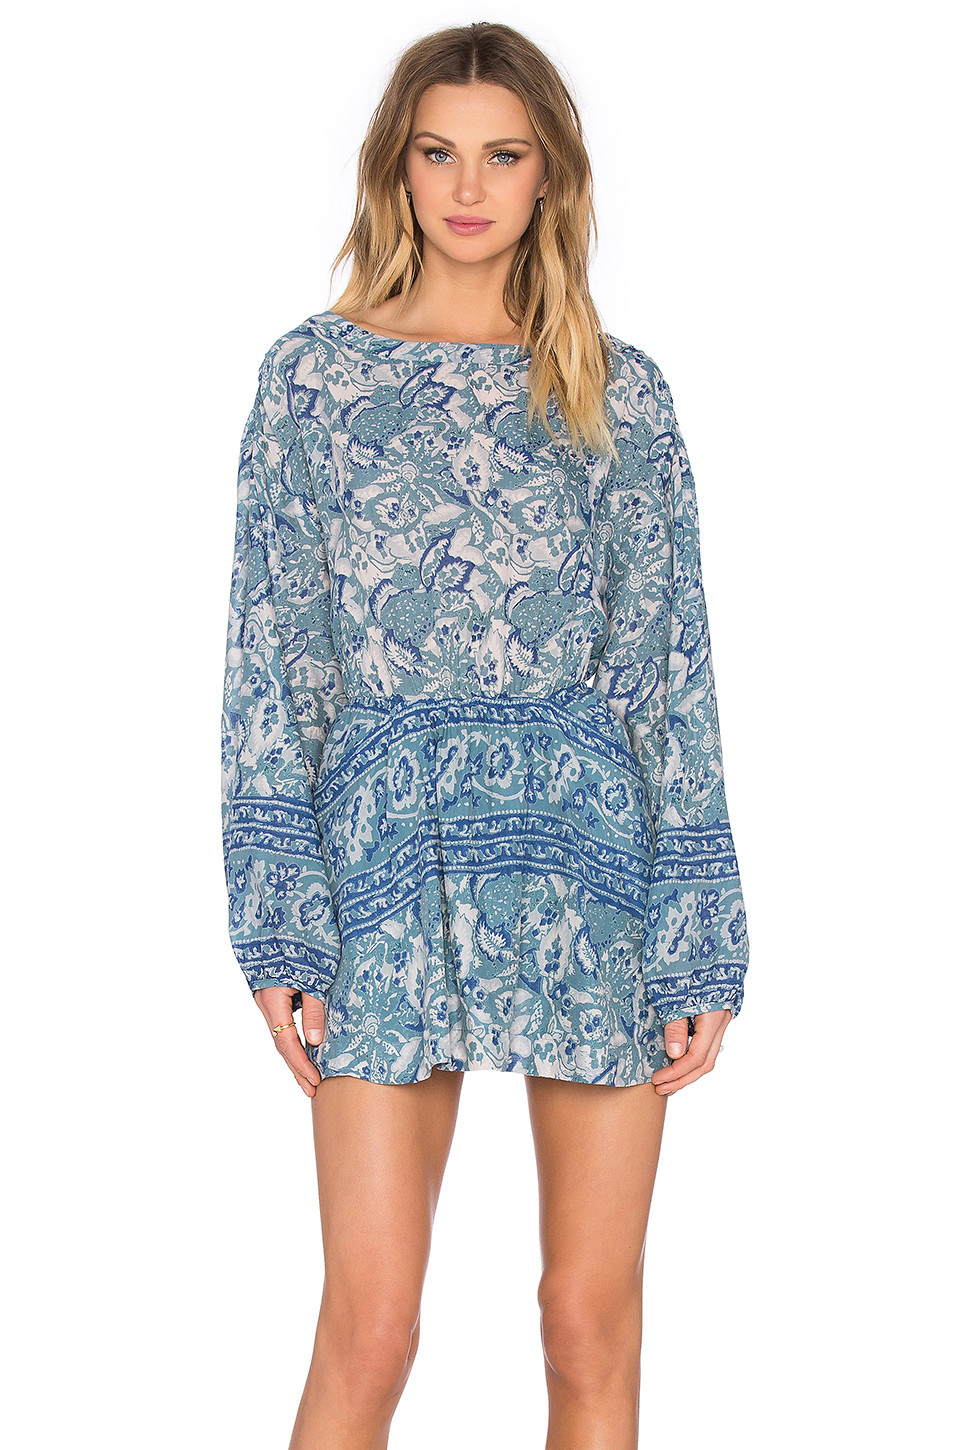 Free People Sun print dress in washed blue $128